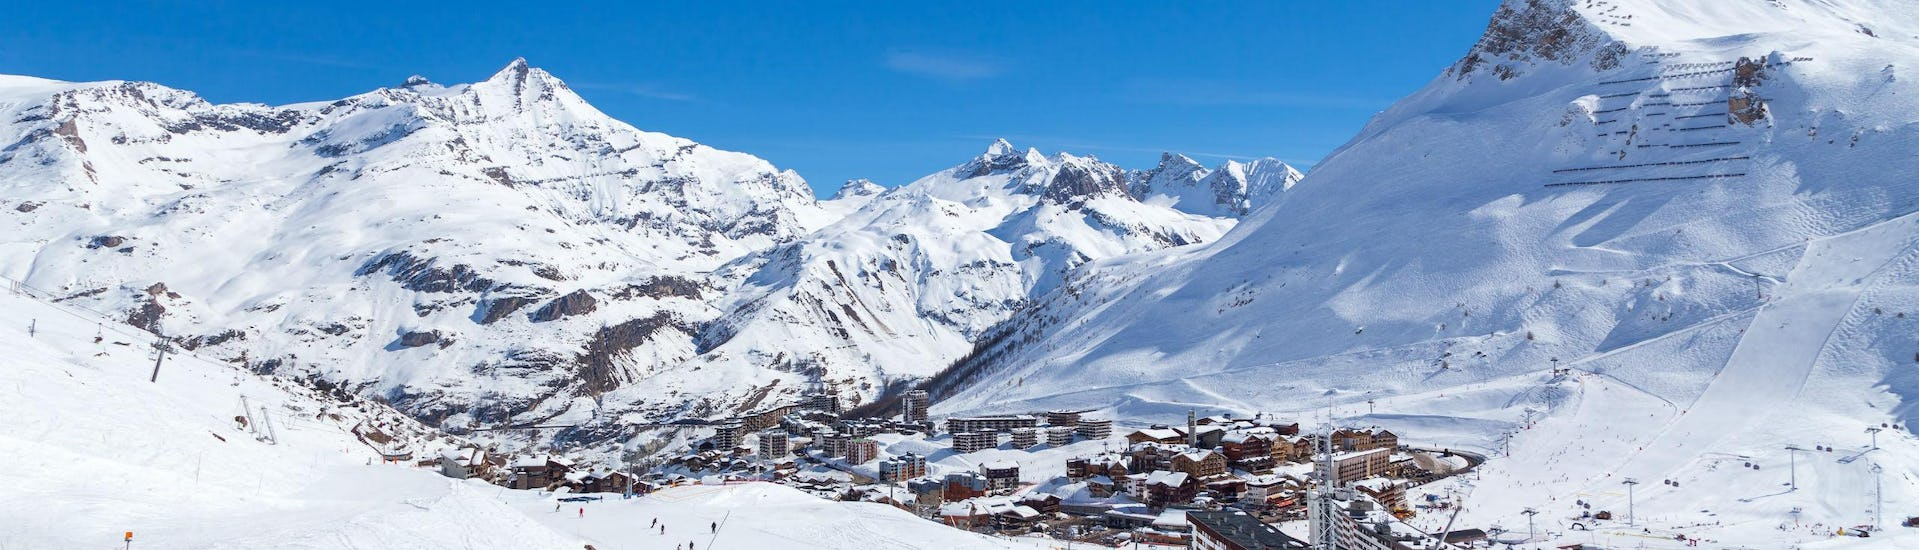 A view of the French ski resort of Tignes under the clear blue sky with its many pistes used by the local ski schools to carry out their ski lessons.